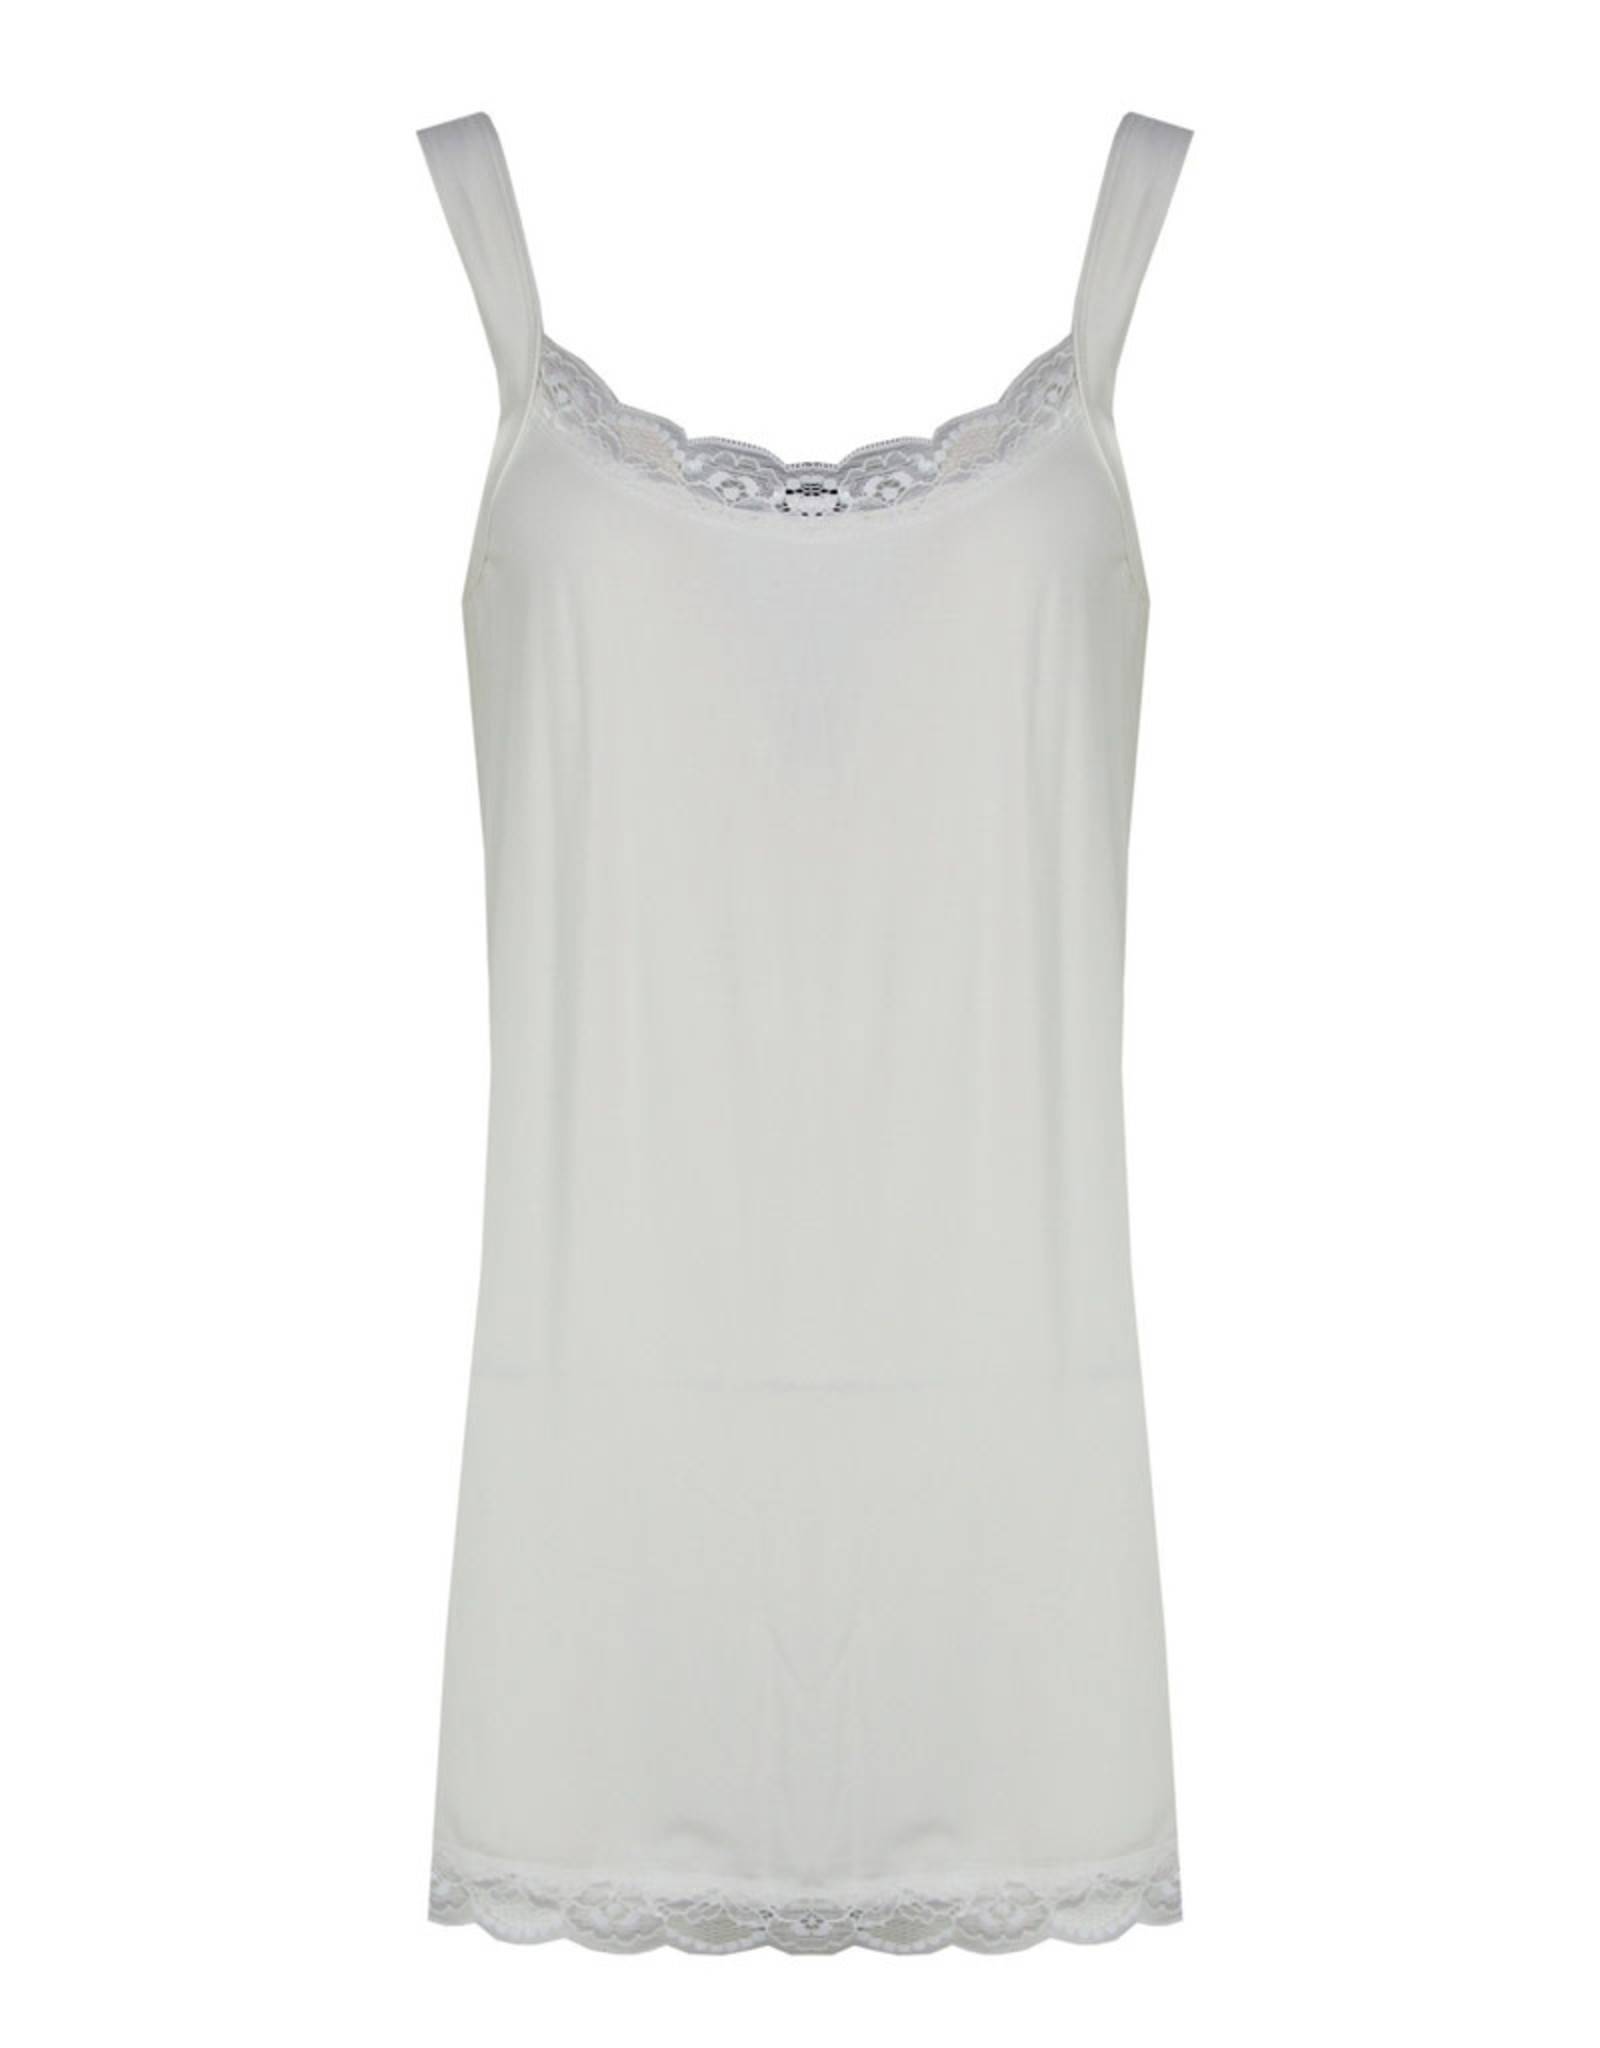 Exxcellent Top Nina lace offwhite